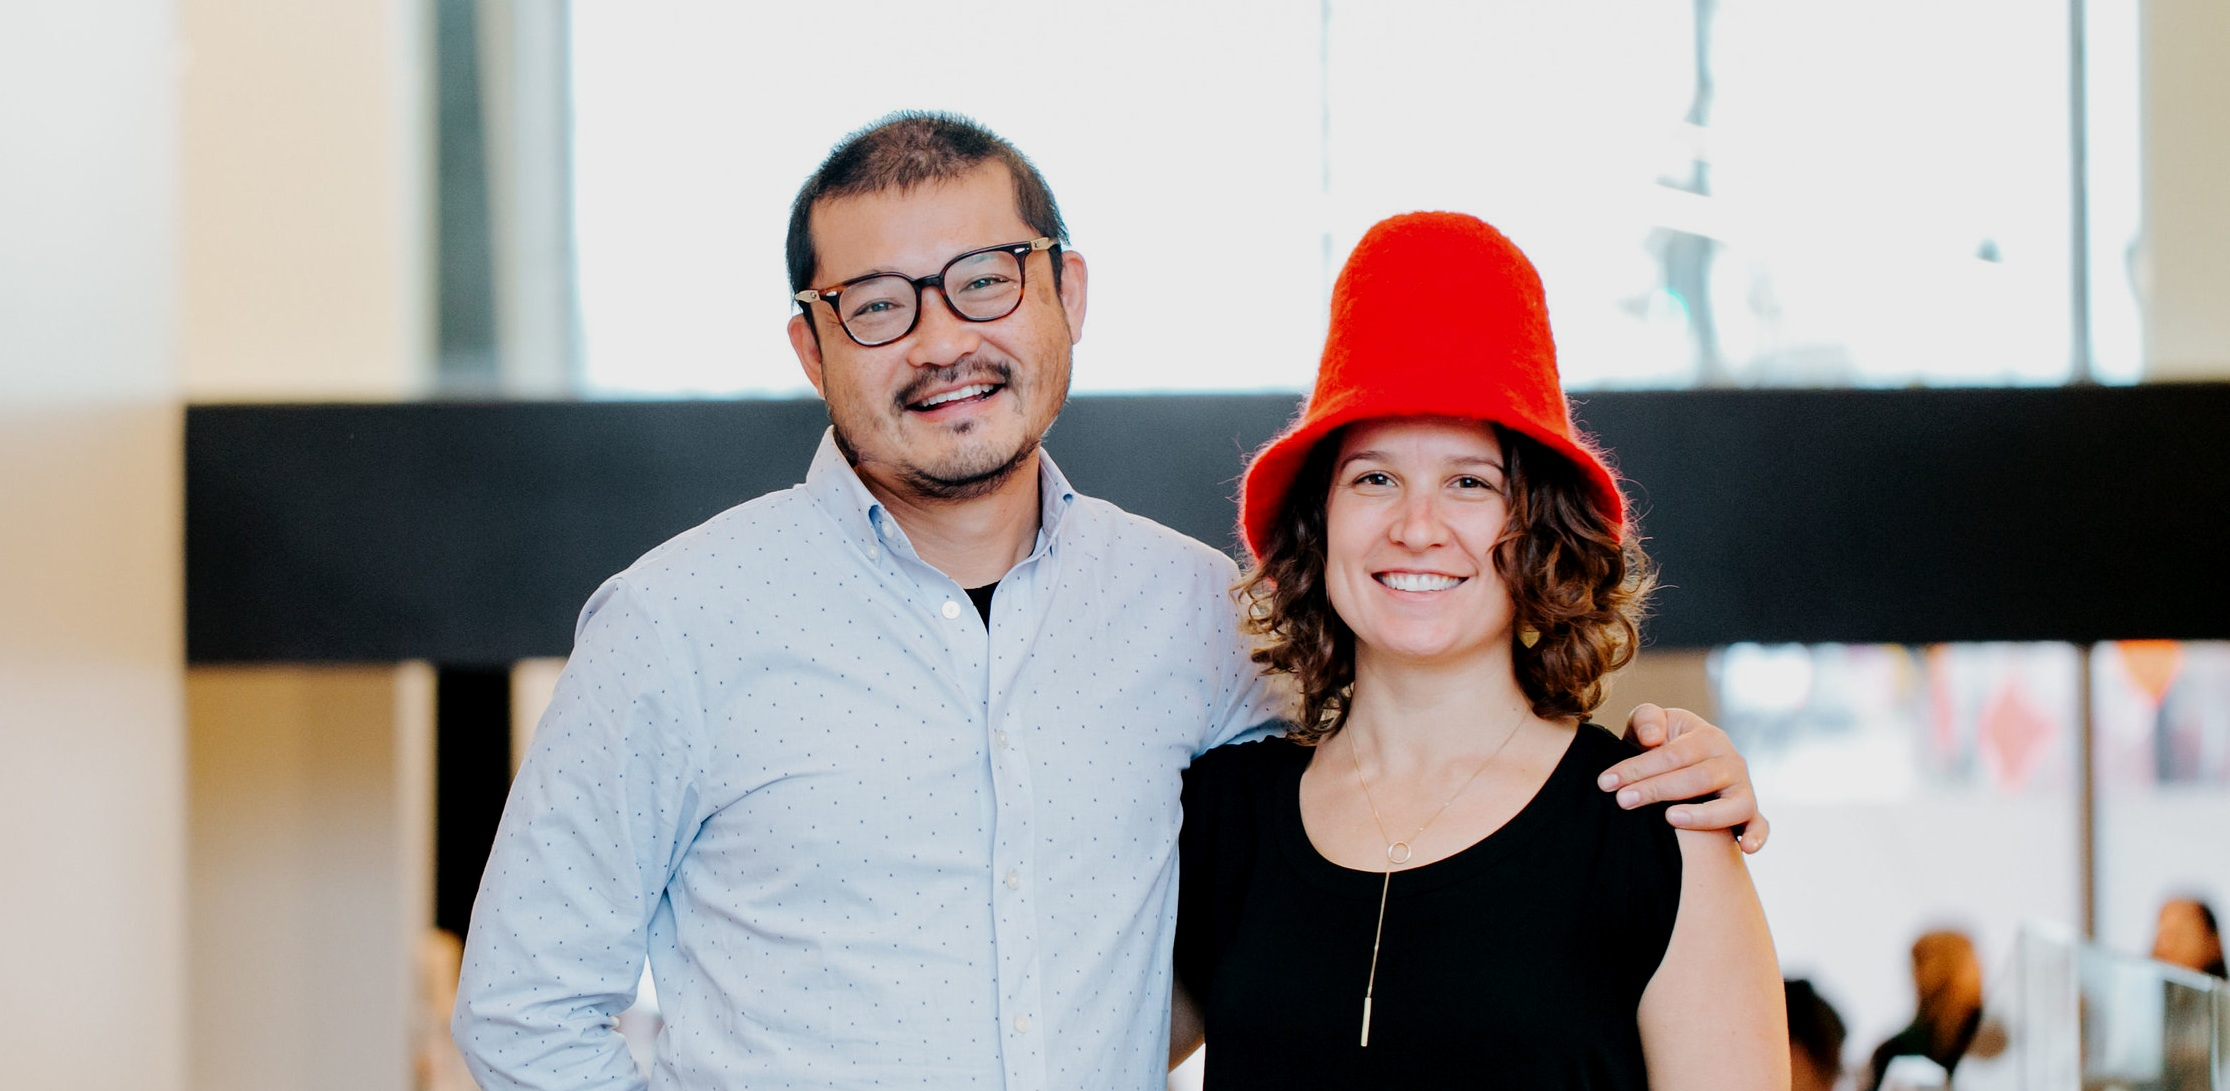 Douglas Tsoi and Suzanne Pflaum, Co-Founders of Mycelium